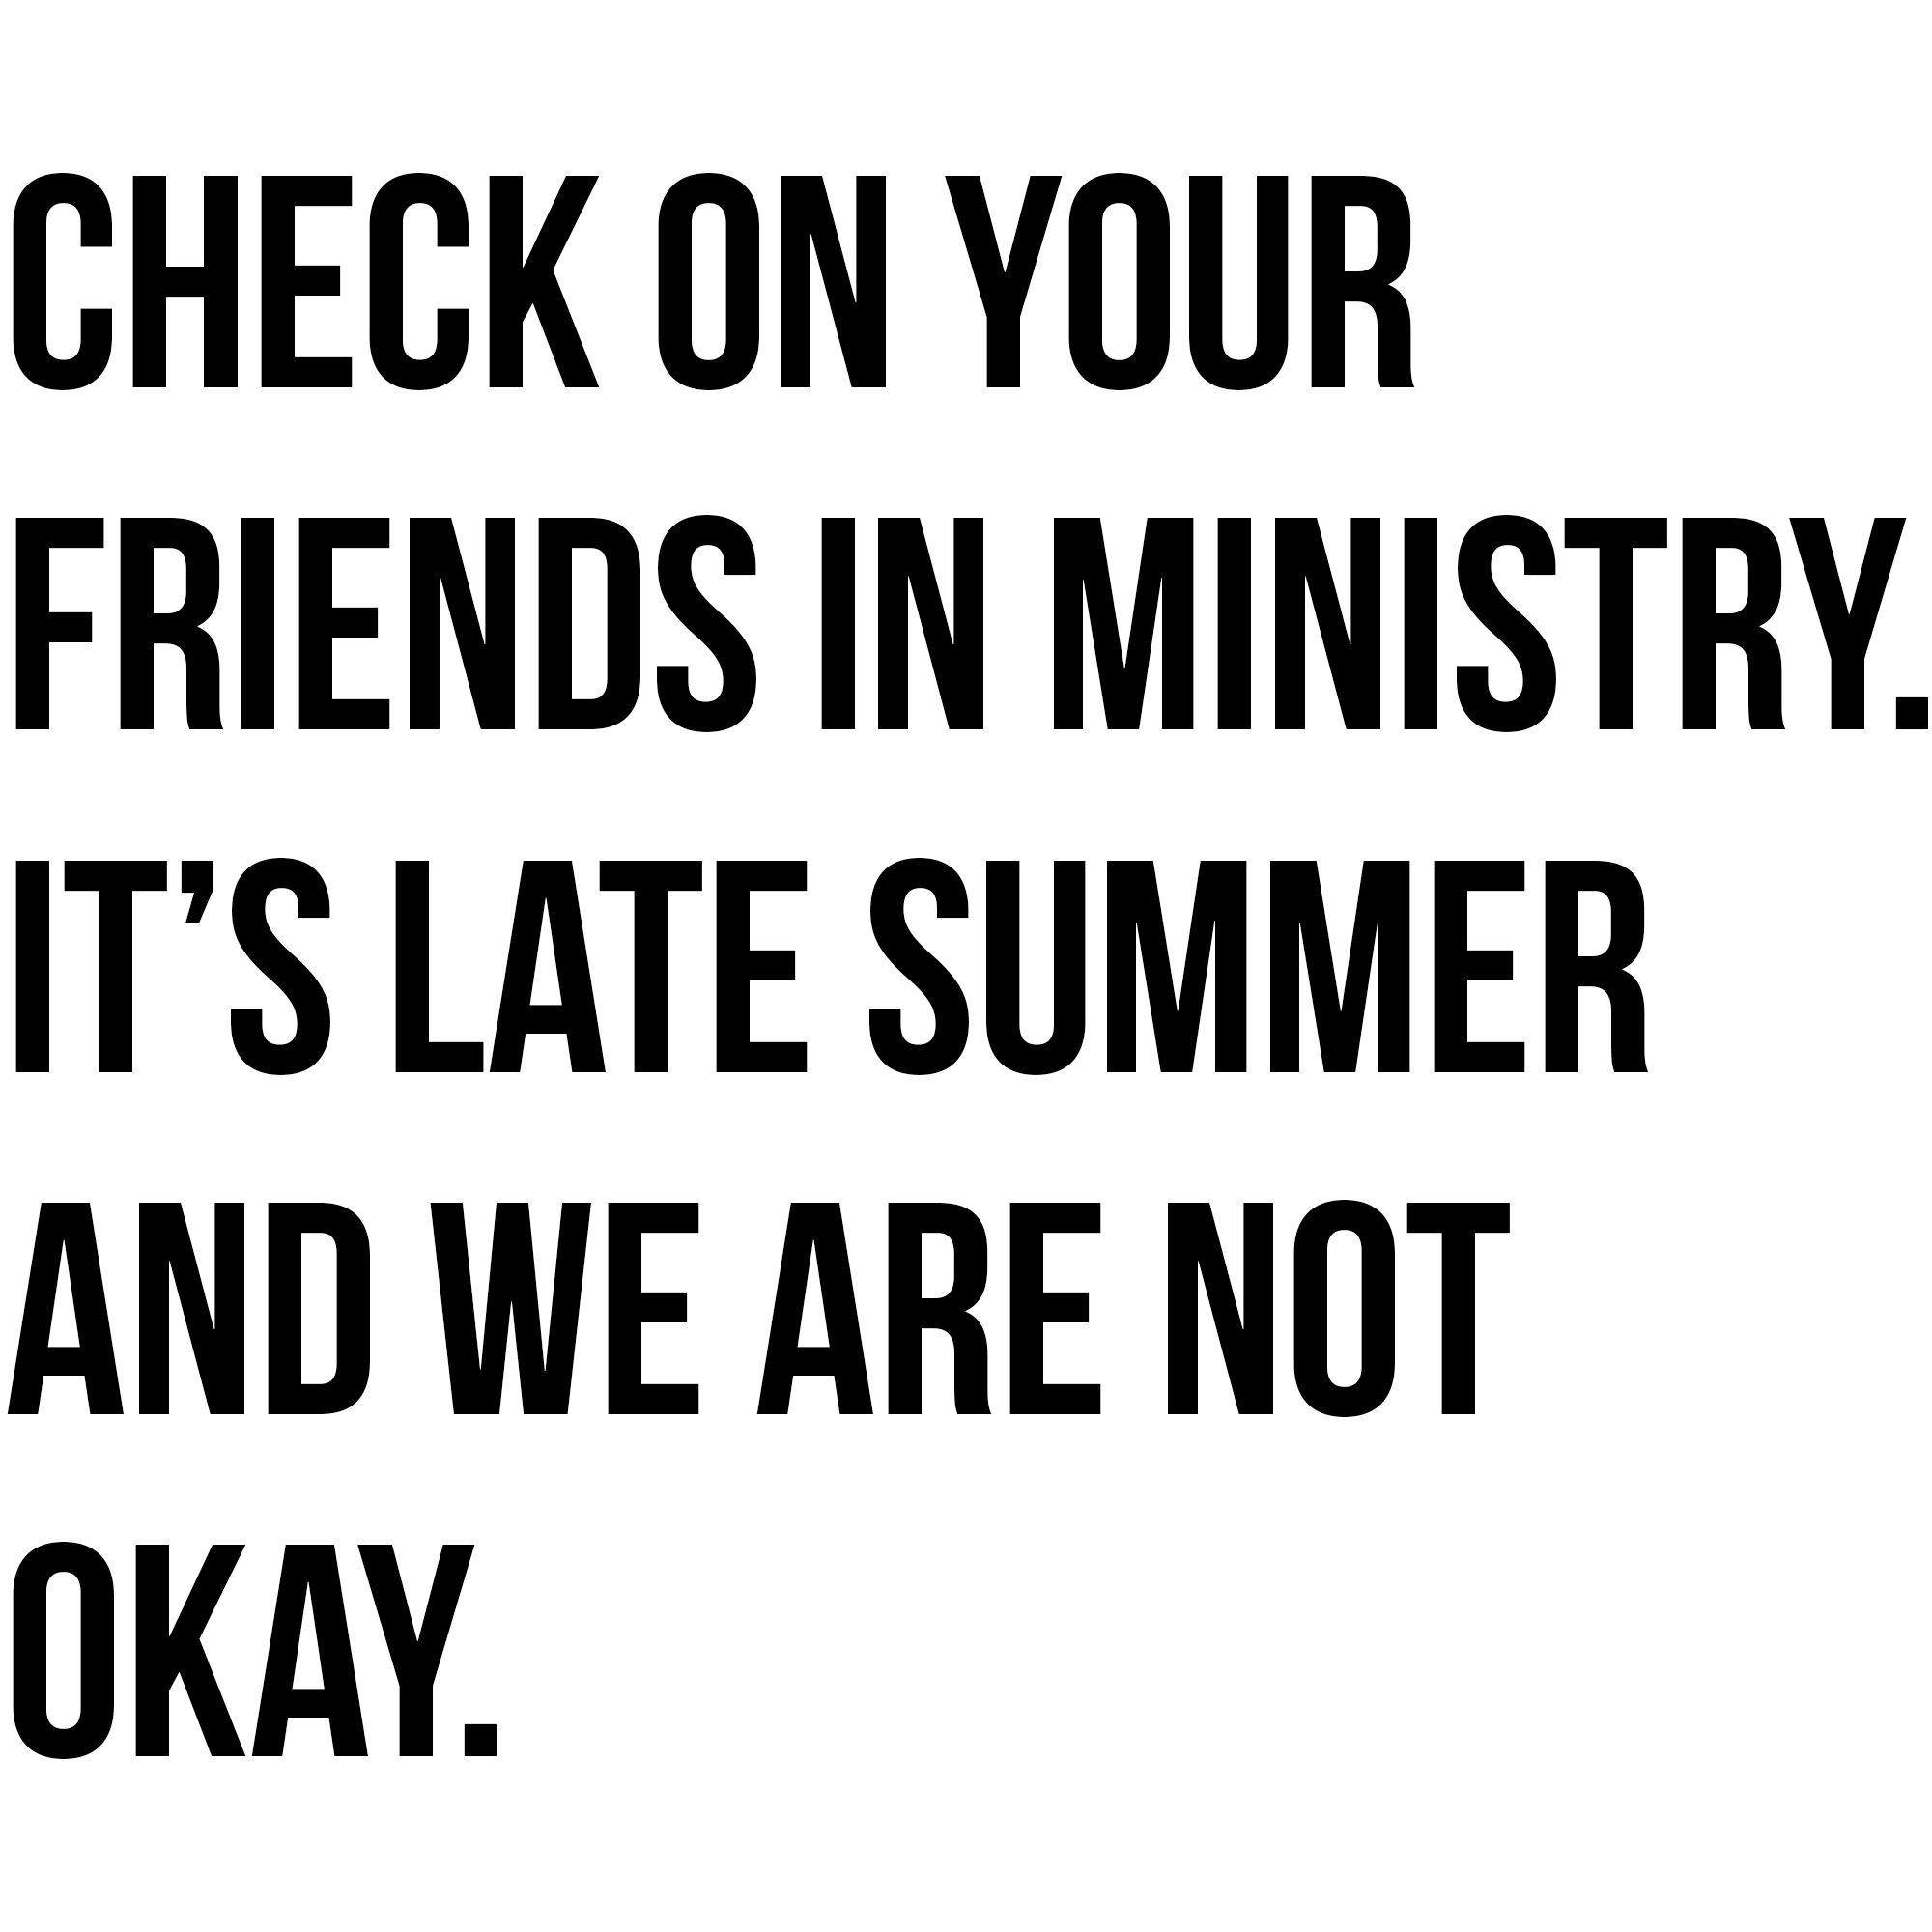 check on ministry friends.jpg